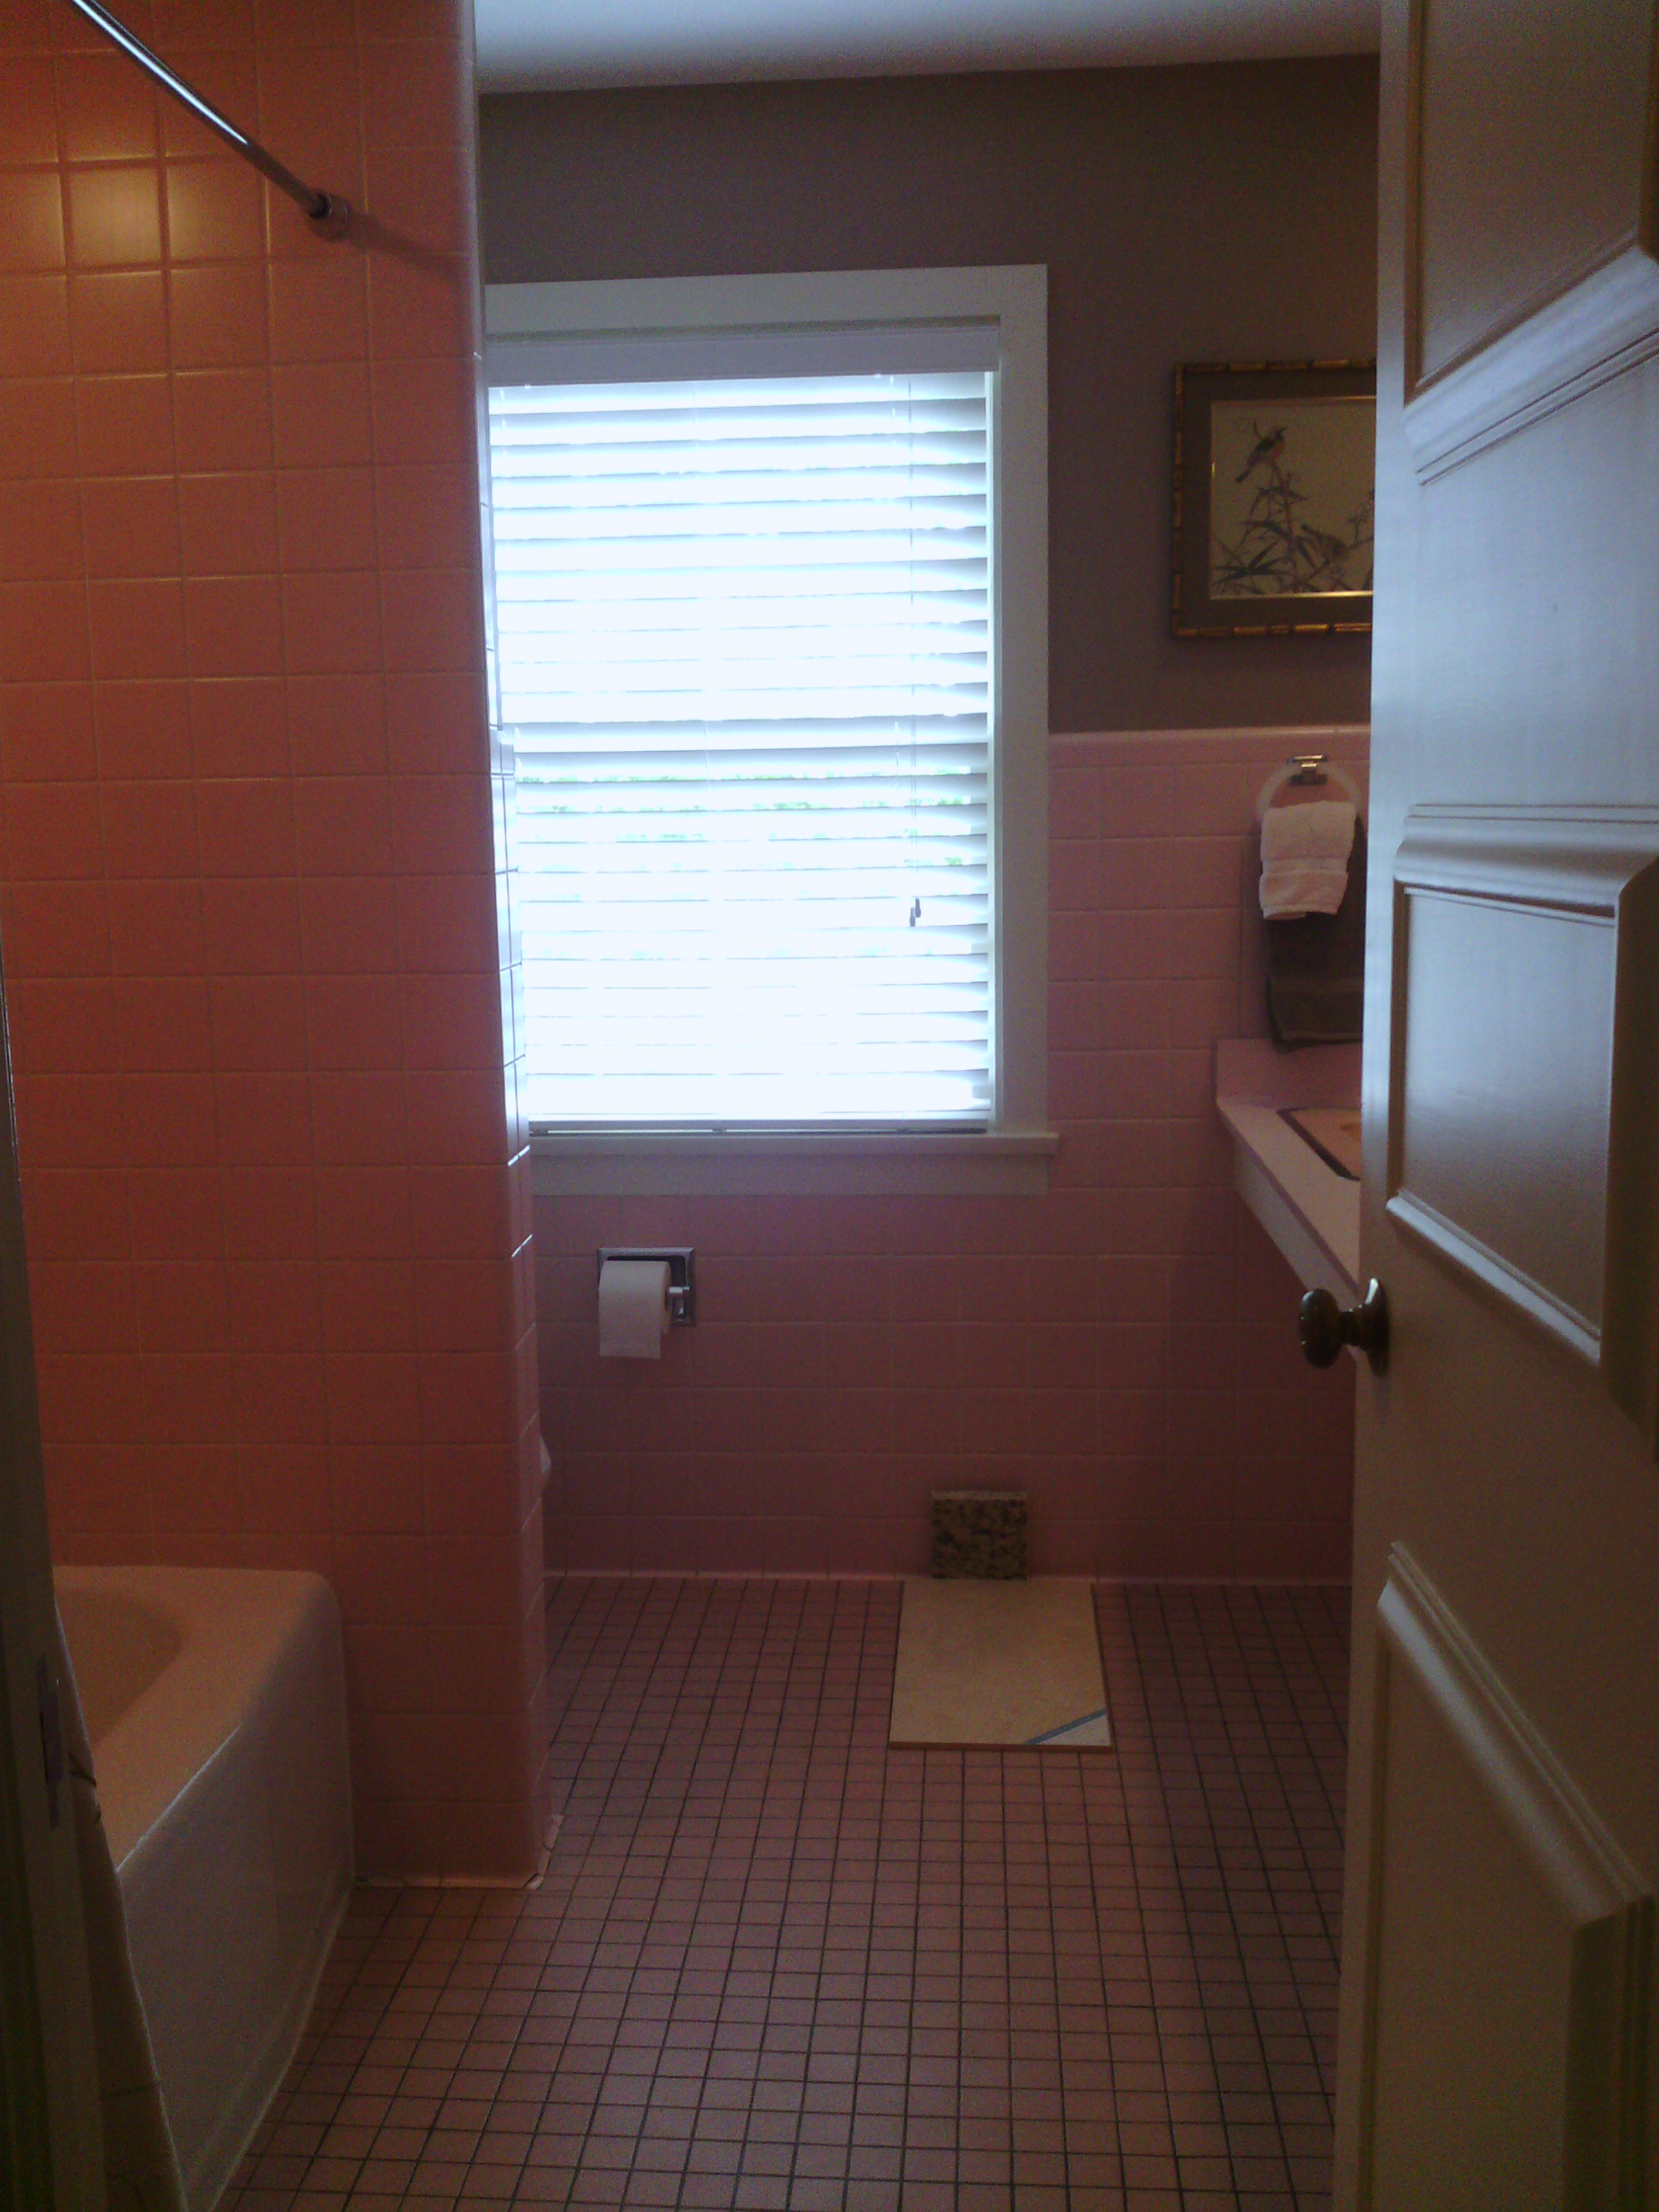 Bathroom Remodeling Kenosha Wi kitchen and bathroom remodeling project slides in racine, kenosha